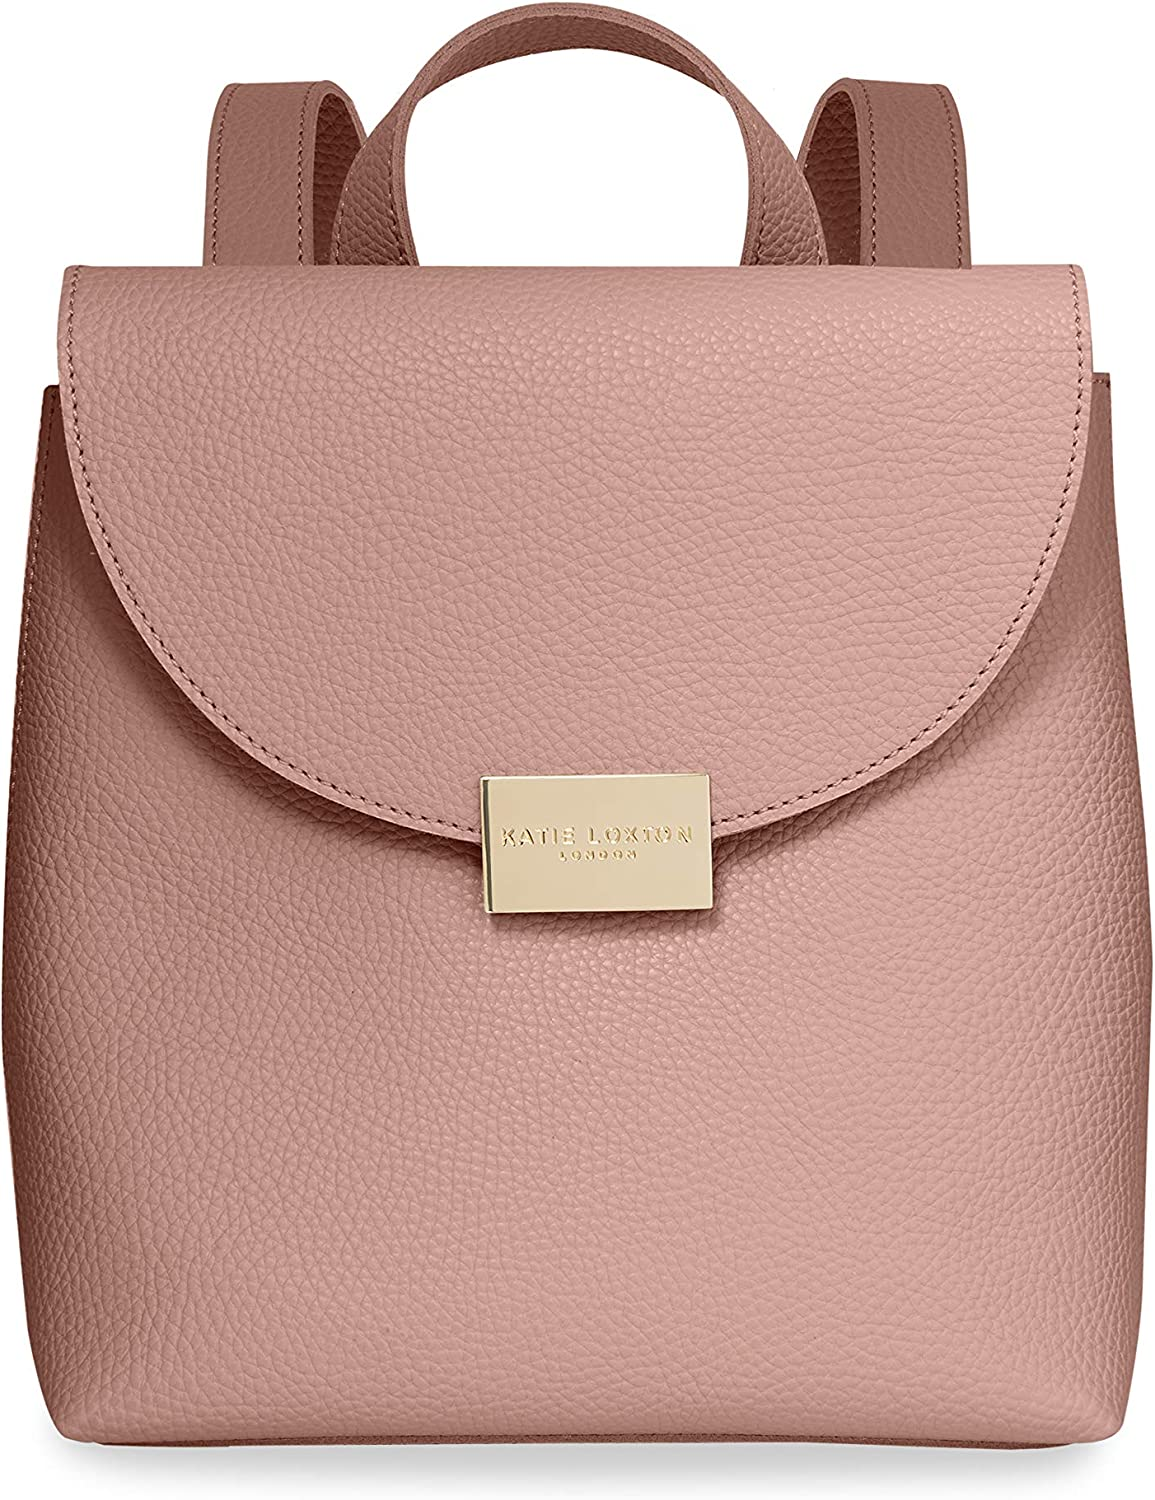 Katie Loxton Bailey Womens Vegan Leather Convertible Strap Top Handle Backpack Purse Pink